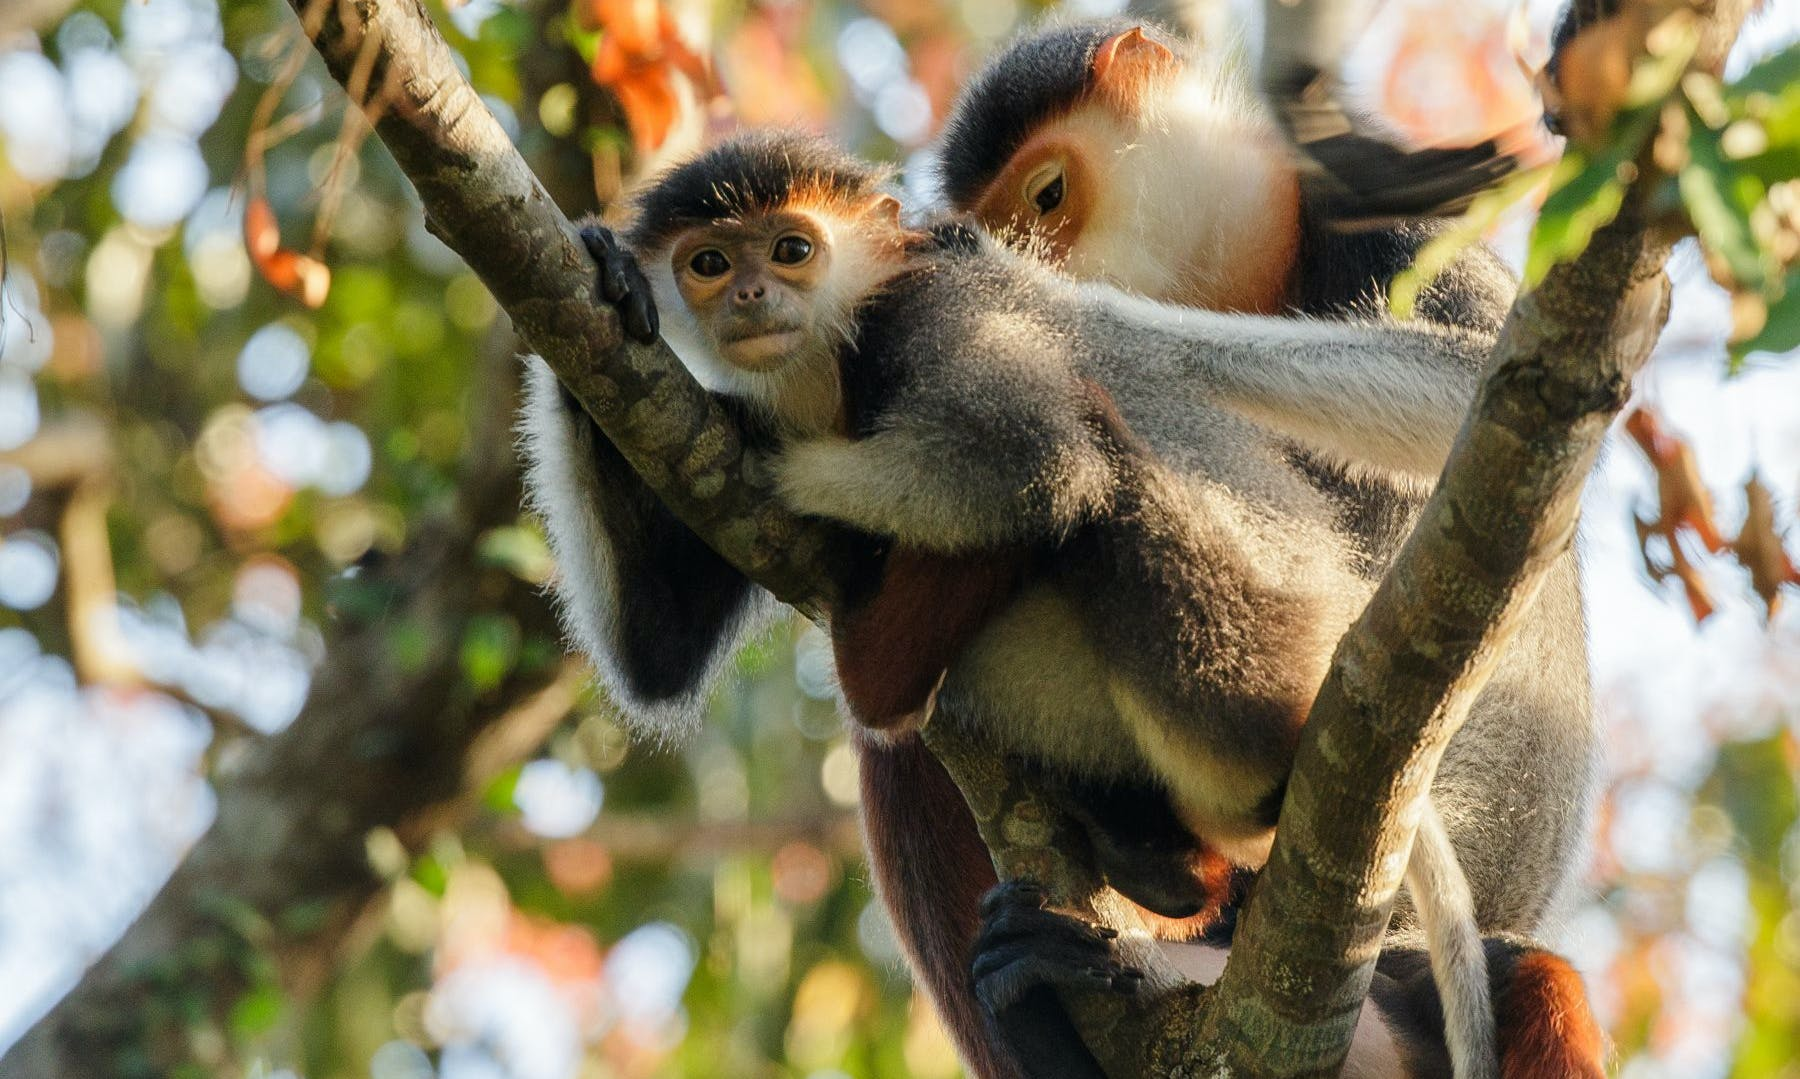 Hanging Out with Vietnam's Critically Endangered Primates